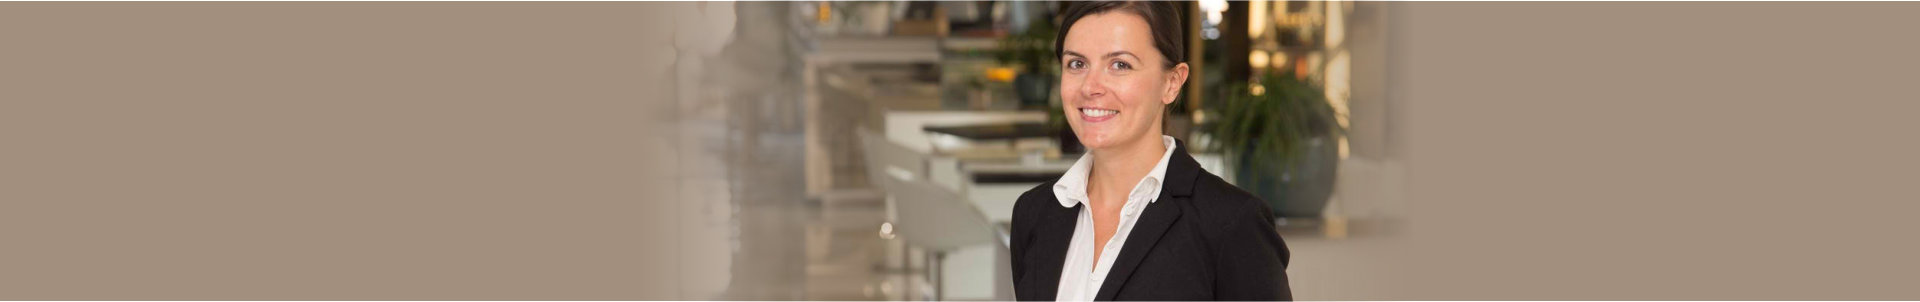 elegant and cheerful woman as receptionist